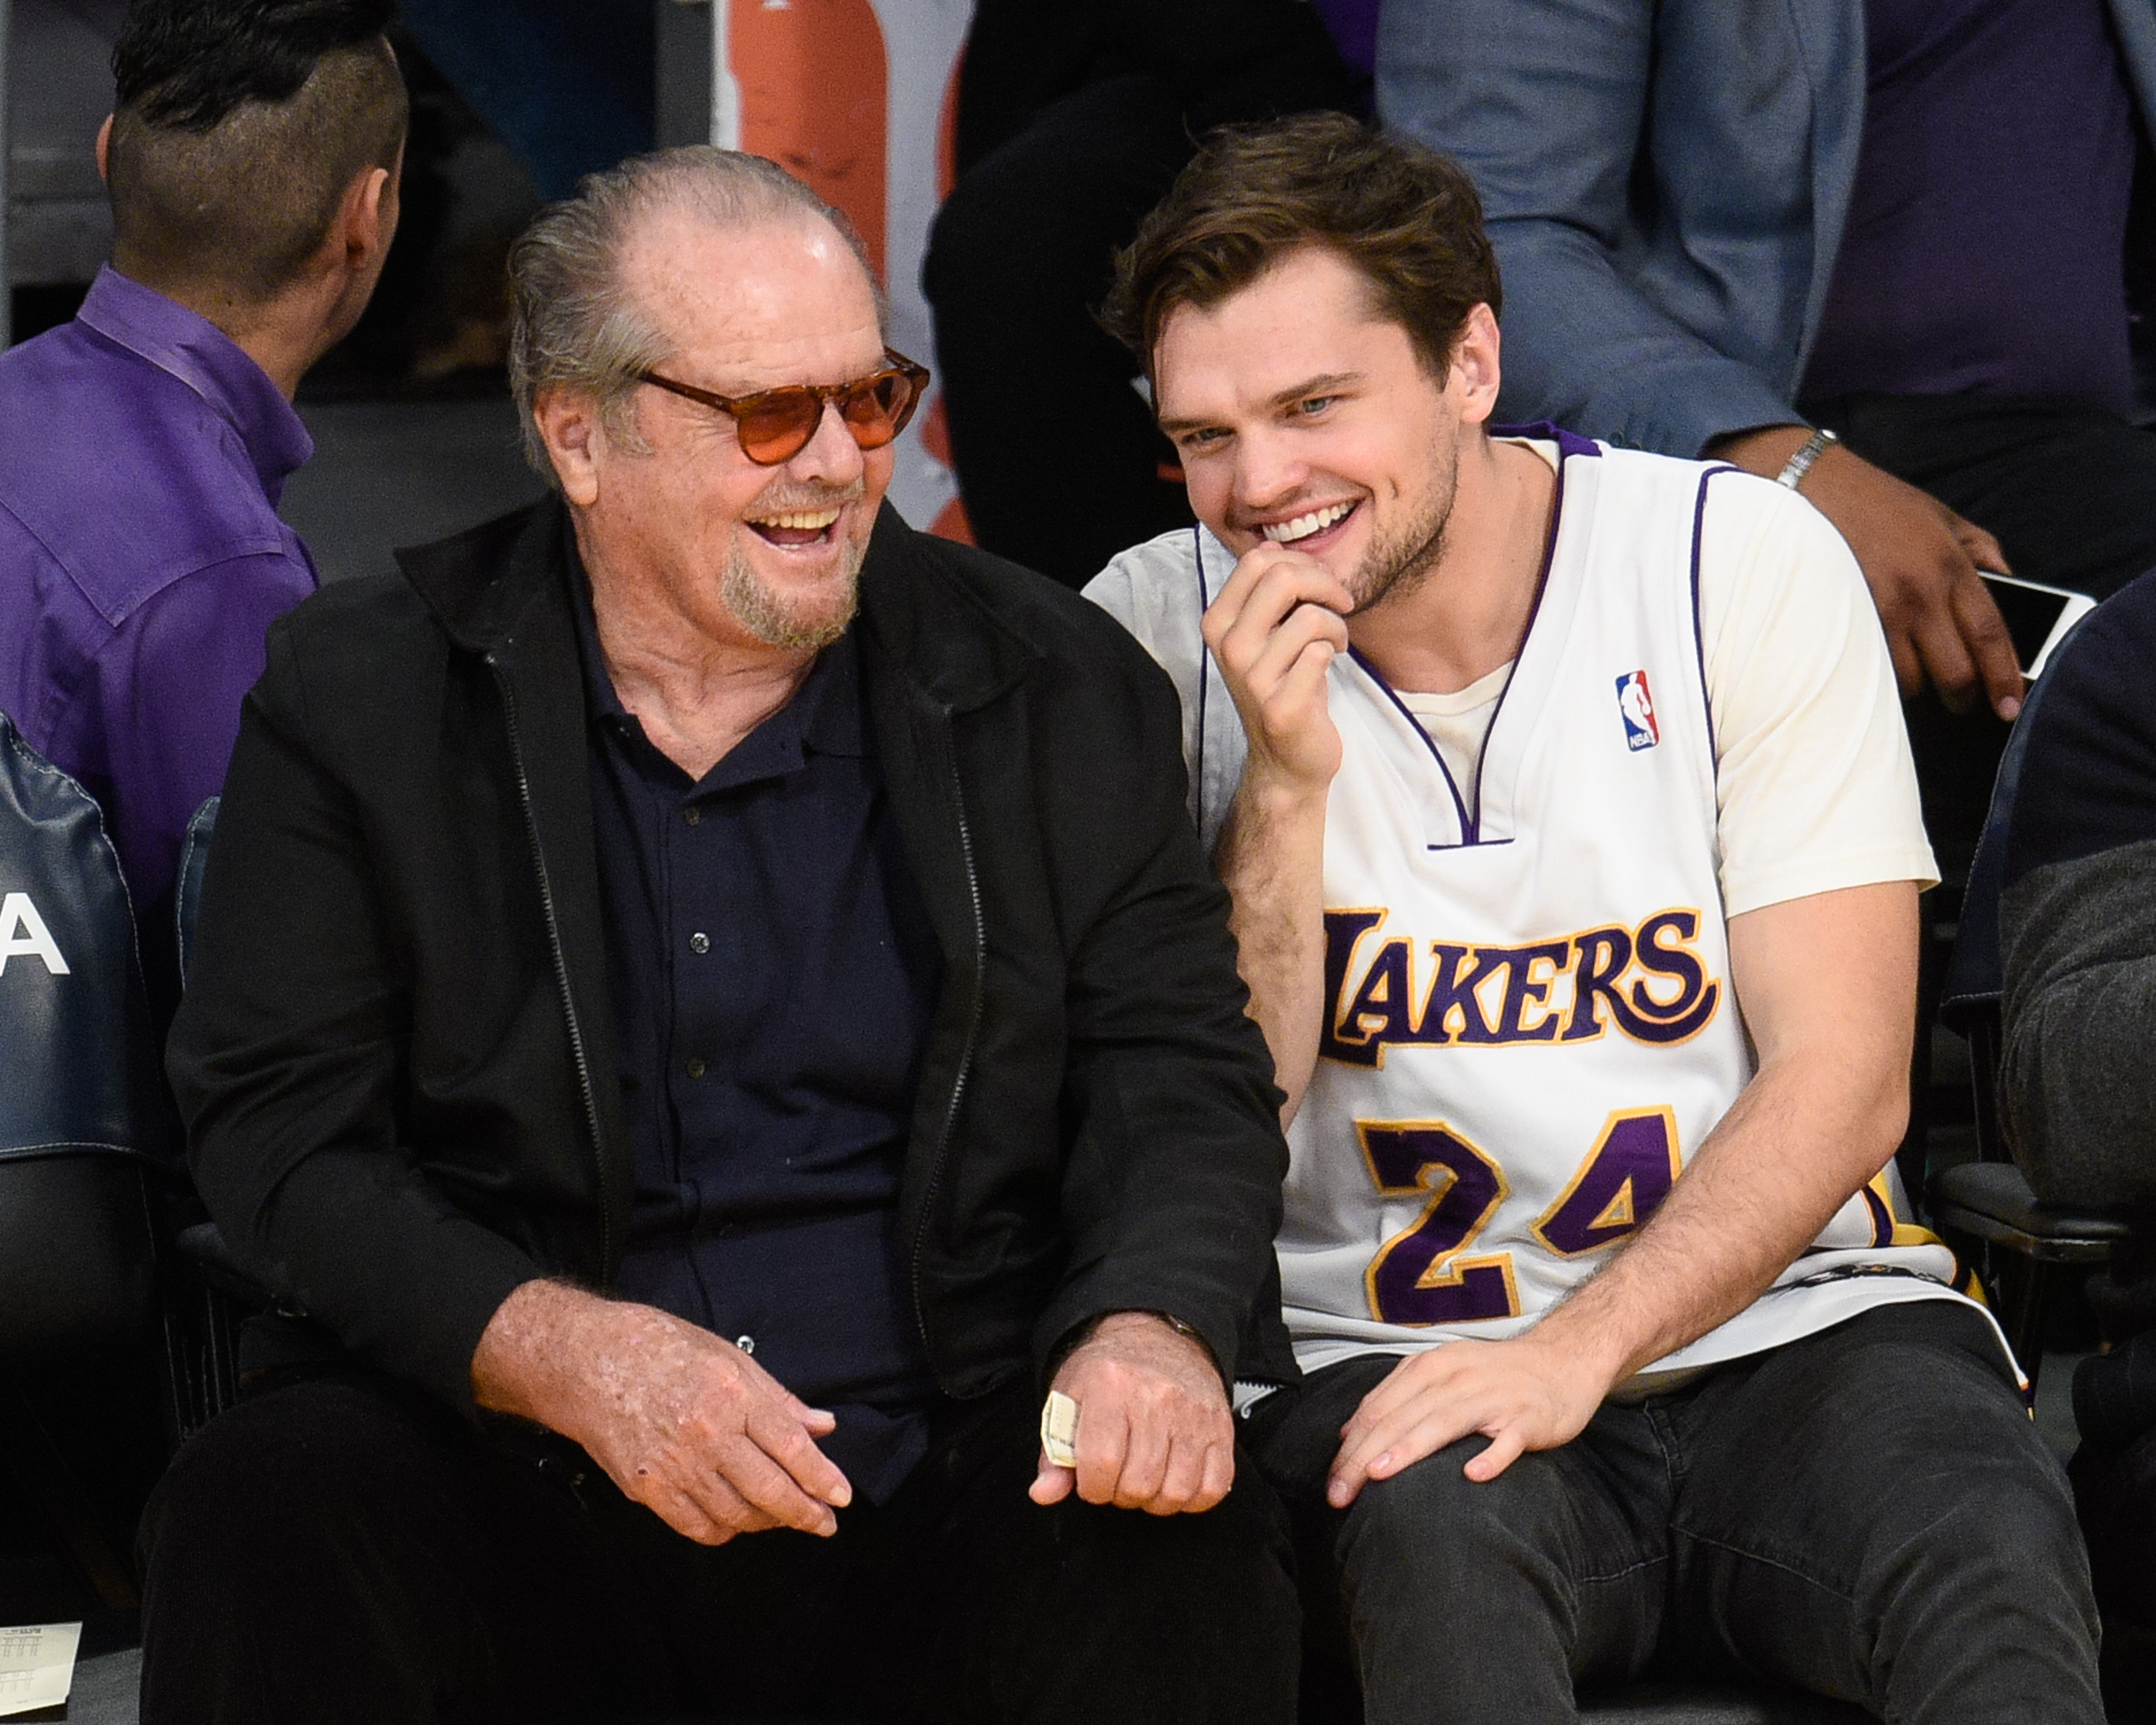 See Leonardo Dicaprio Lookalike Jack Nicholson S Son Photos Time Ray was born raymond broussard nicholson on february 20, 1992 in los angeles, ca. https time com 4715496 leo dicaprio ray nicholson lookalike